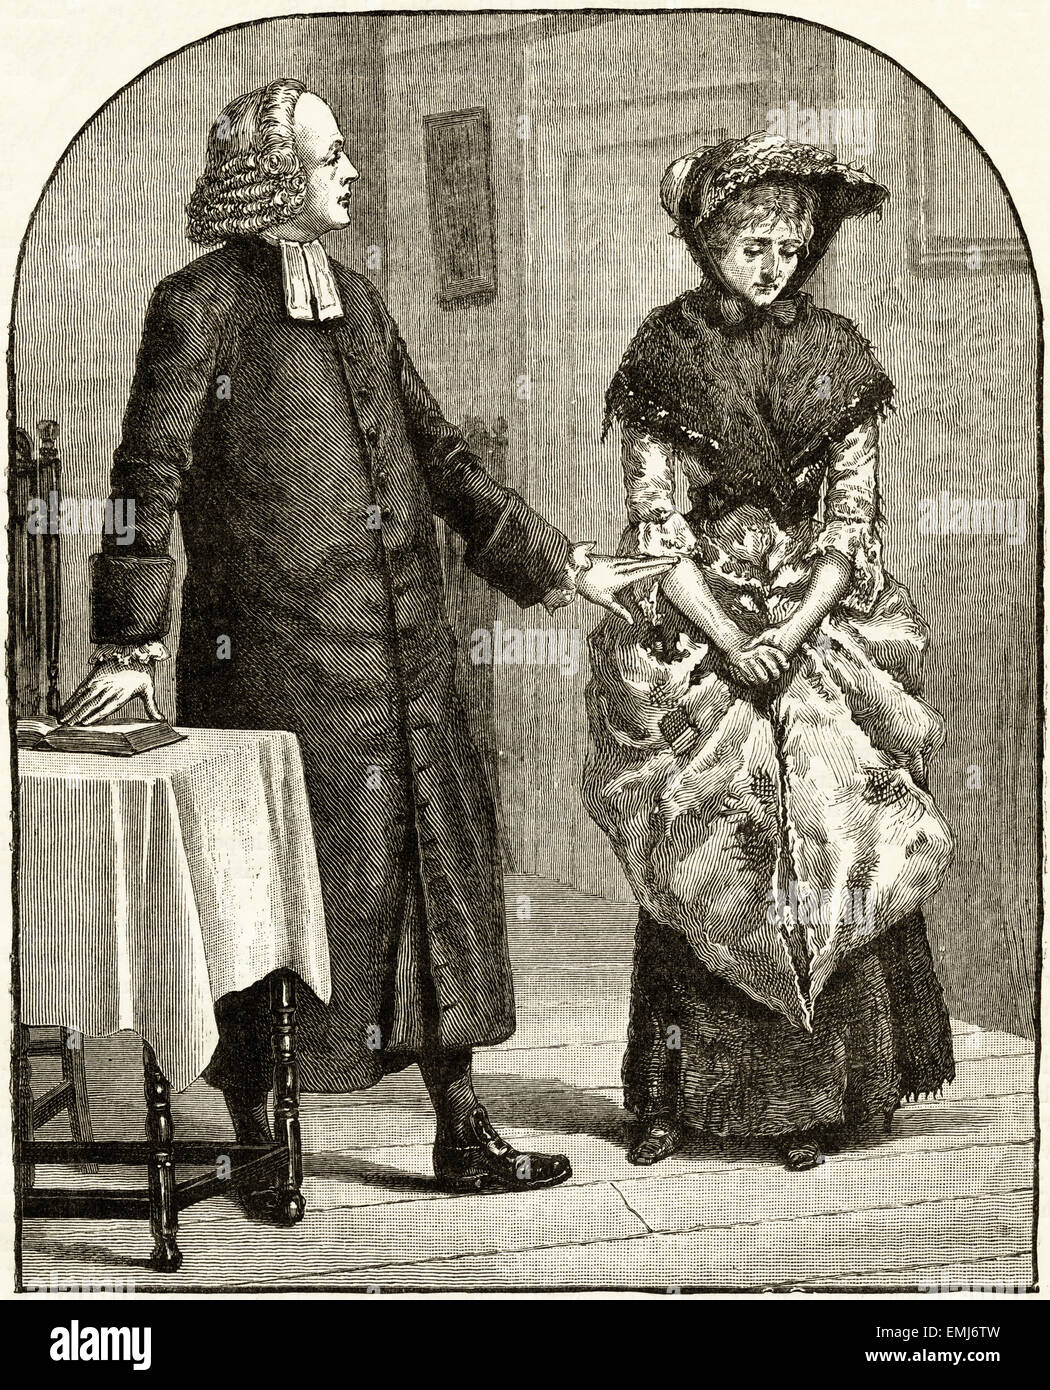 Vicar talking to woman in the vicarage. Victorian woodcut engraving dated 1890 - Stock Image